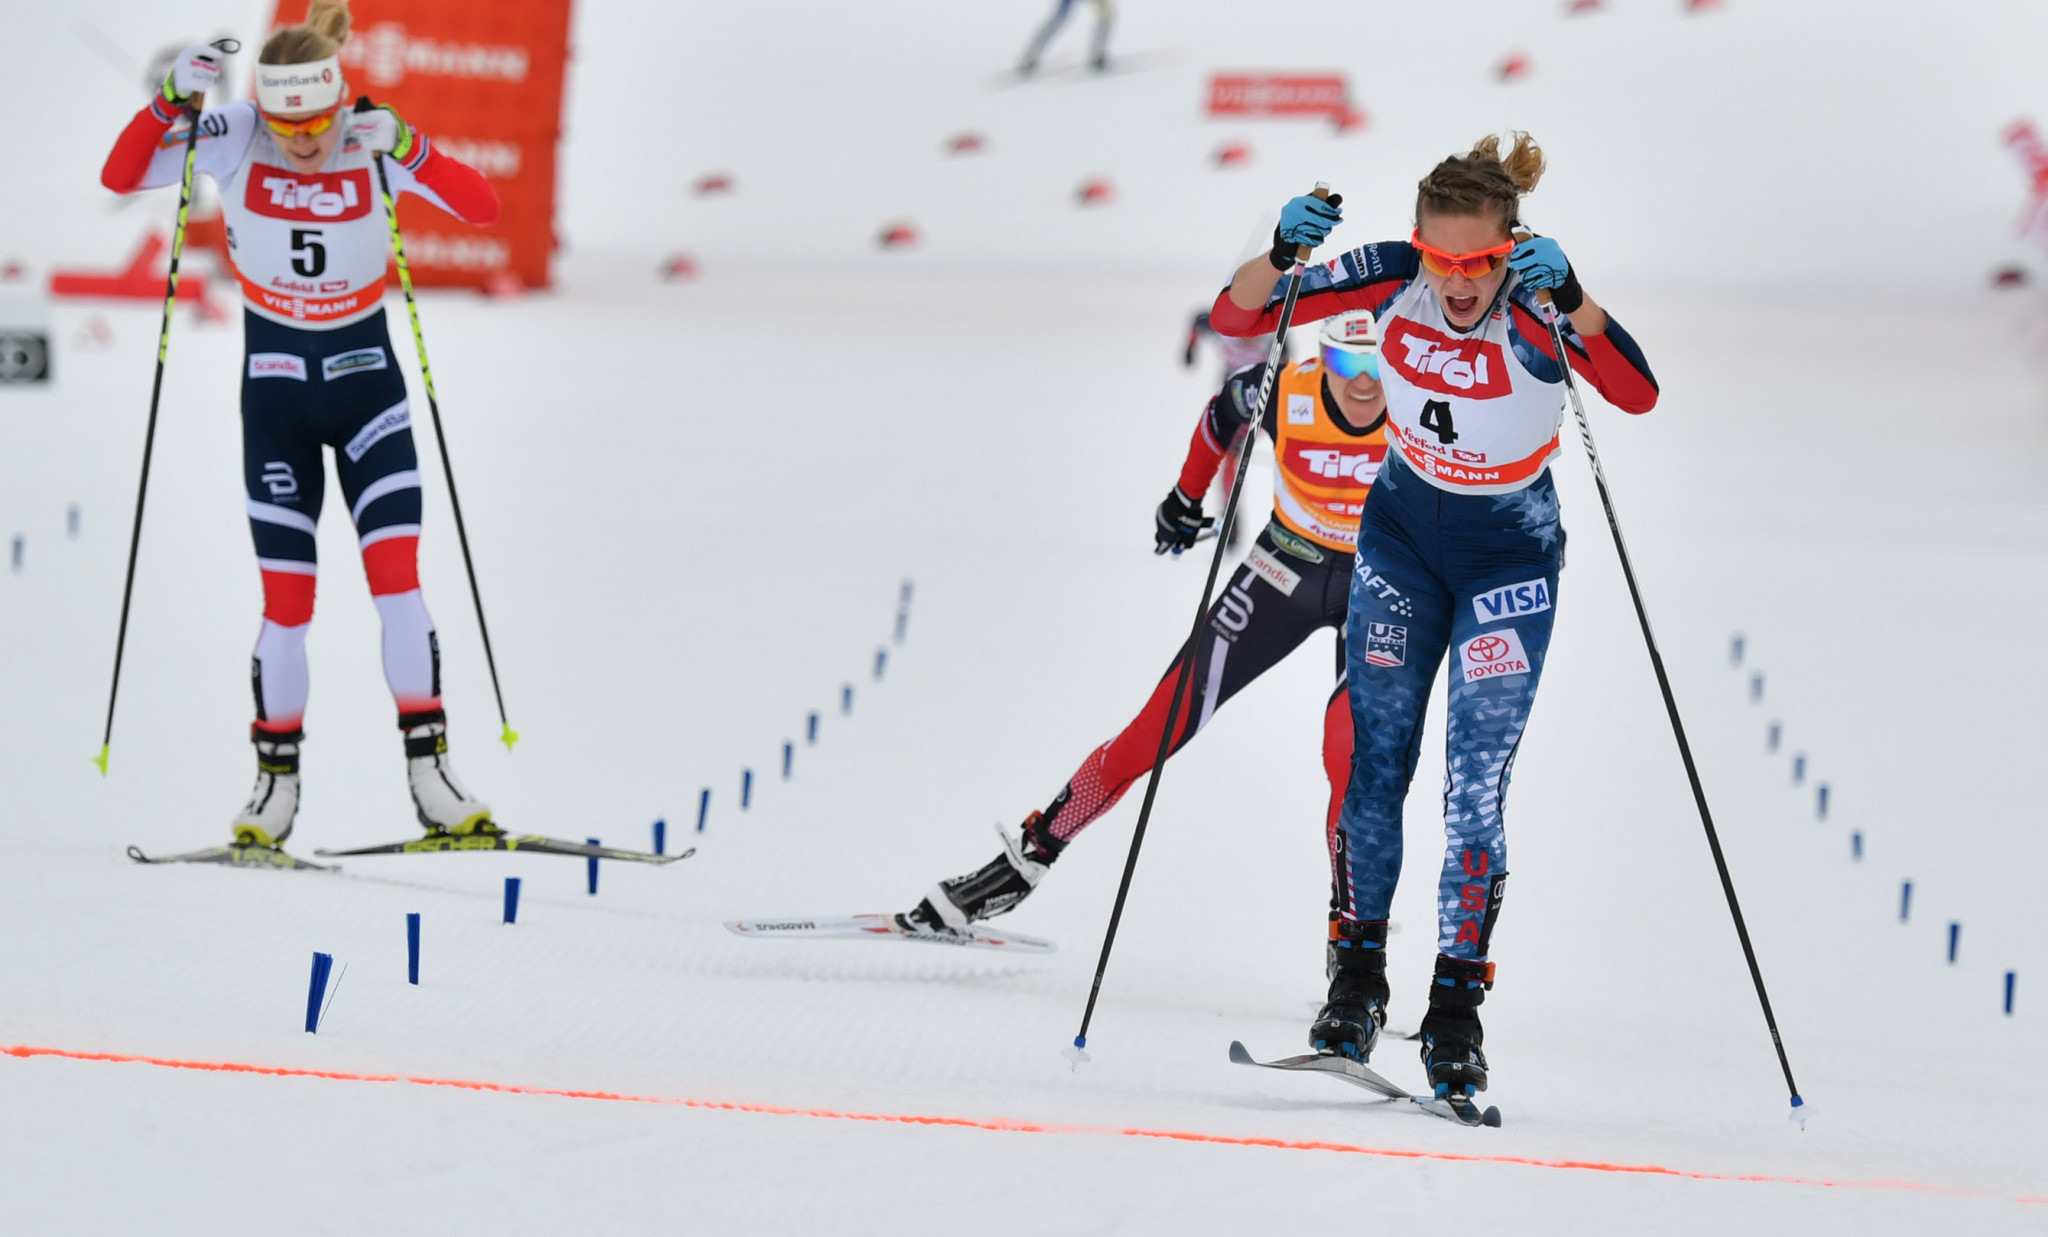 Diggins and Cologna win final FIS Cross-Country World Cup races before Pyeongchang 2018